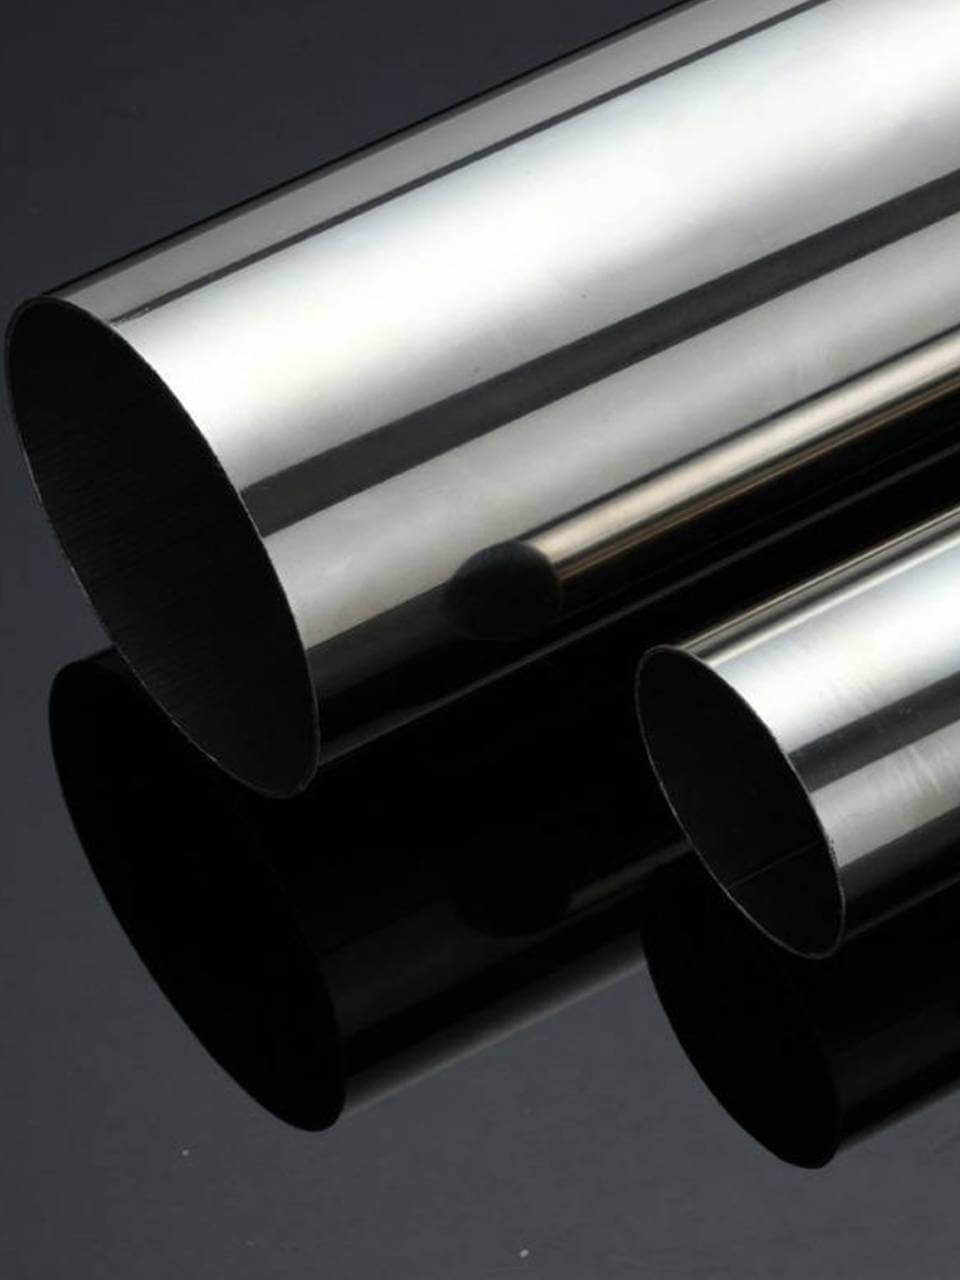 Stainless Steel 316 / 316L Pipes & Tubes